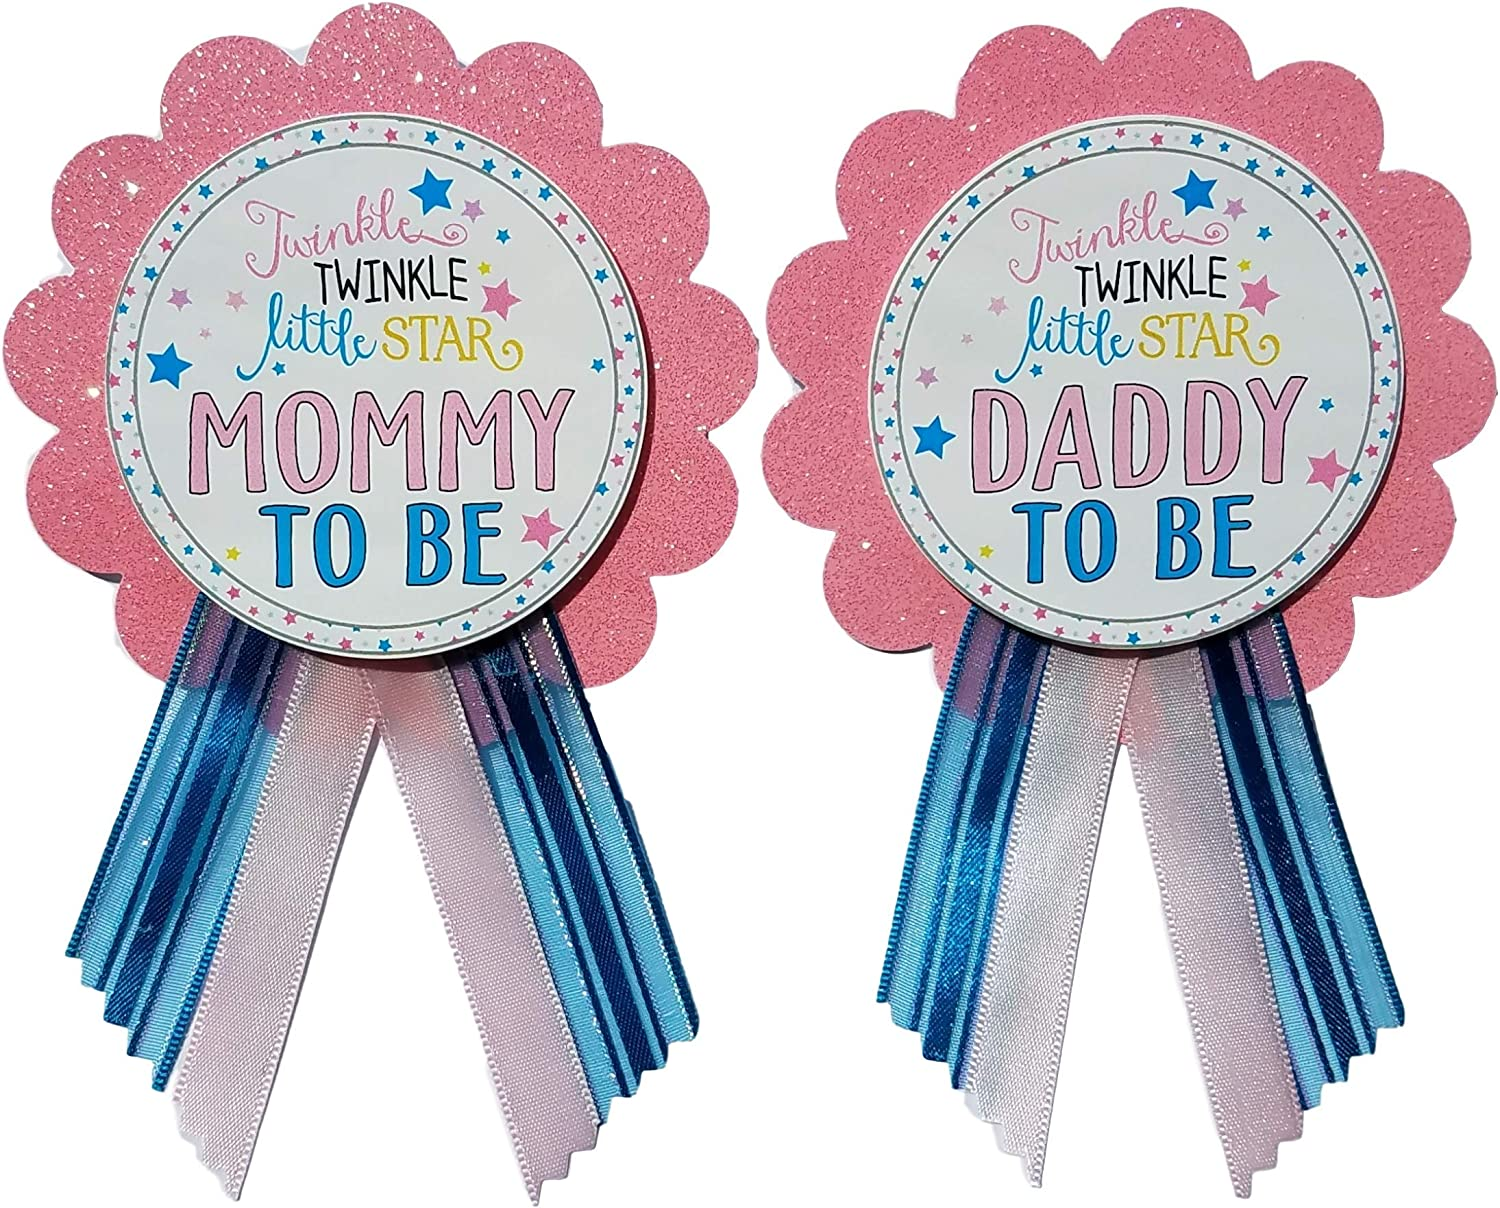 Mommy & Daddy to Be Pin Twinkle Little Star Baby Shower Pins for parents to wear, Pink & Blue, It's a Girl Sprinkle